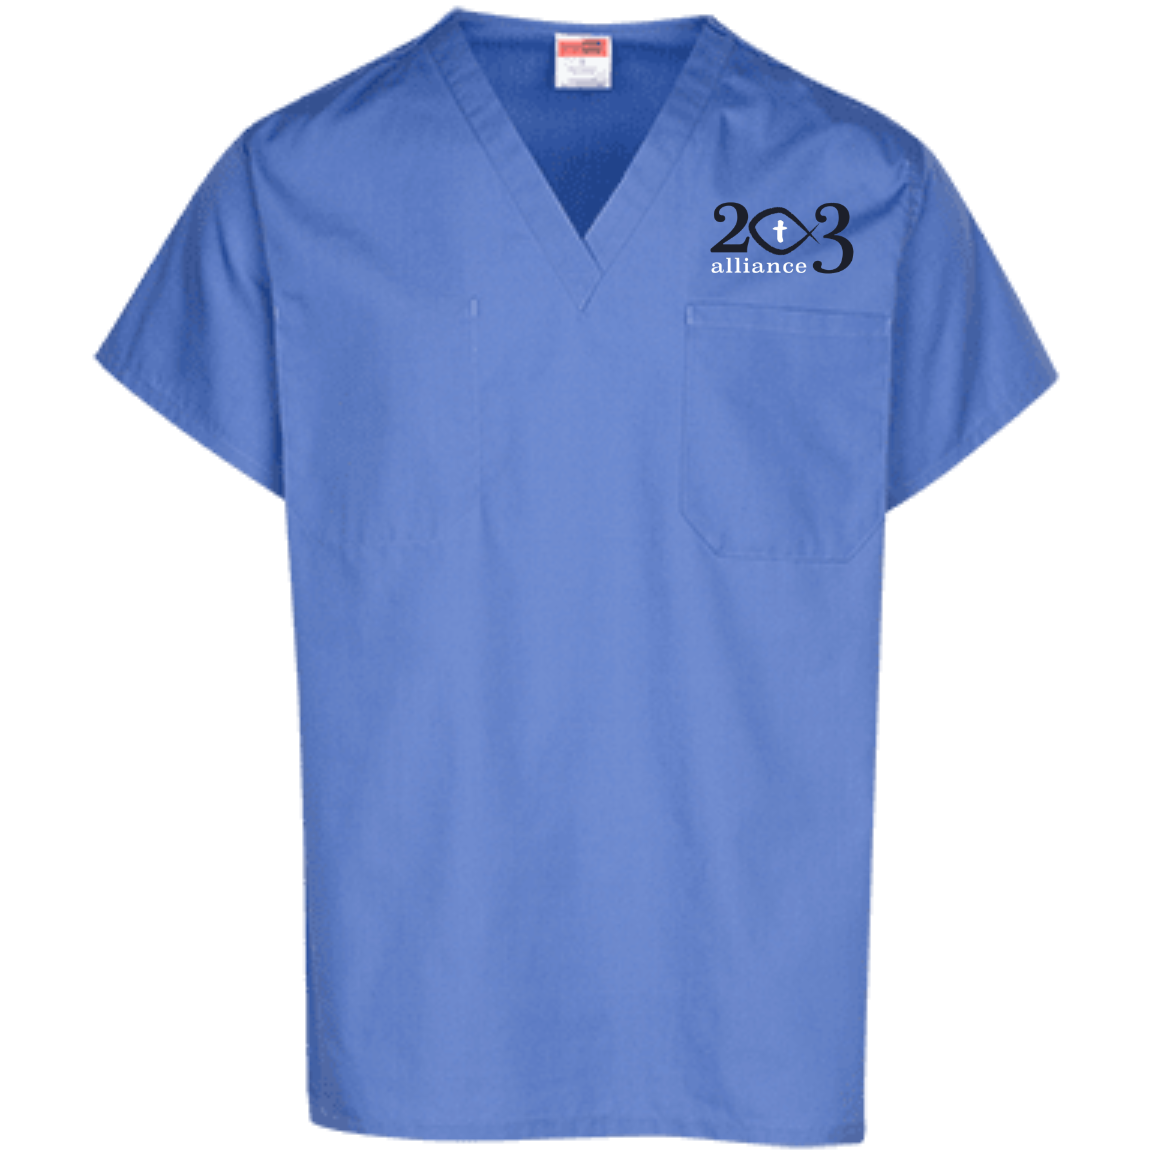 203 Alliance Scrub Top